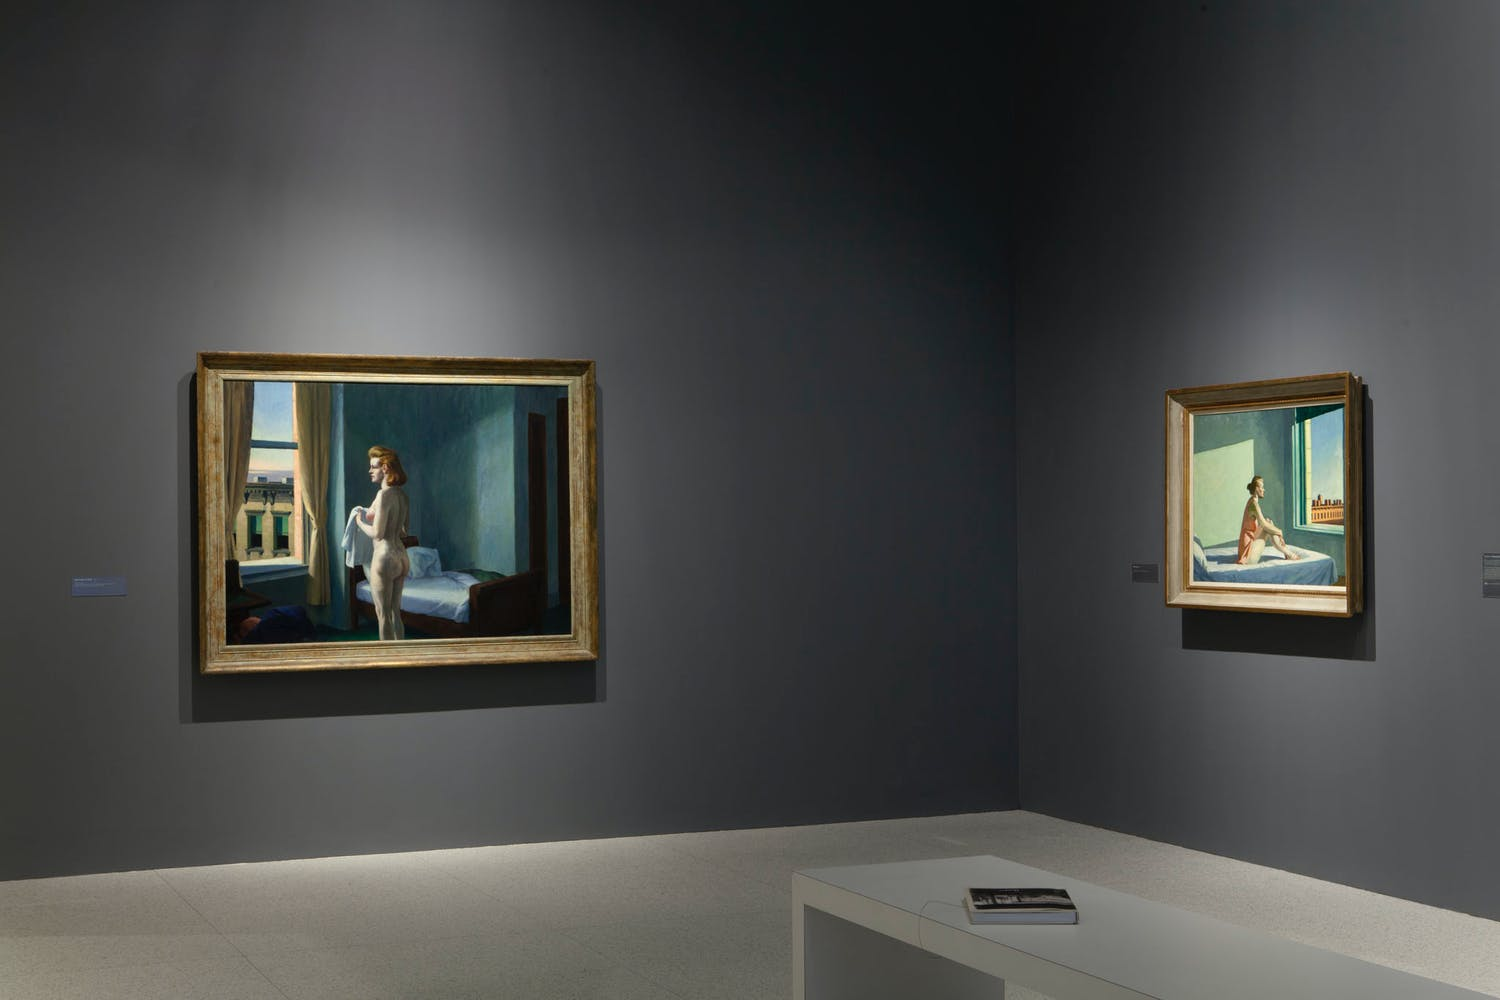 View of the exhibition Hopper Drawing: A Painter's Process, 2014; (left to right): Edward Hopper, Morning in a City, 1944; Edward Hopper, Morning Sun, 1952